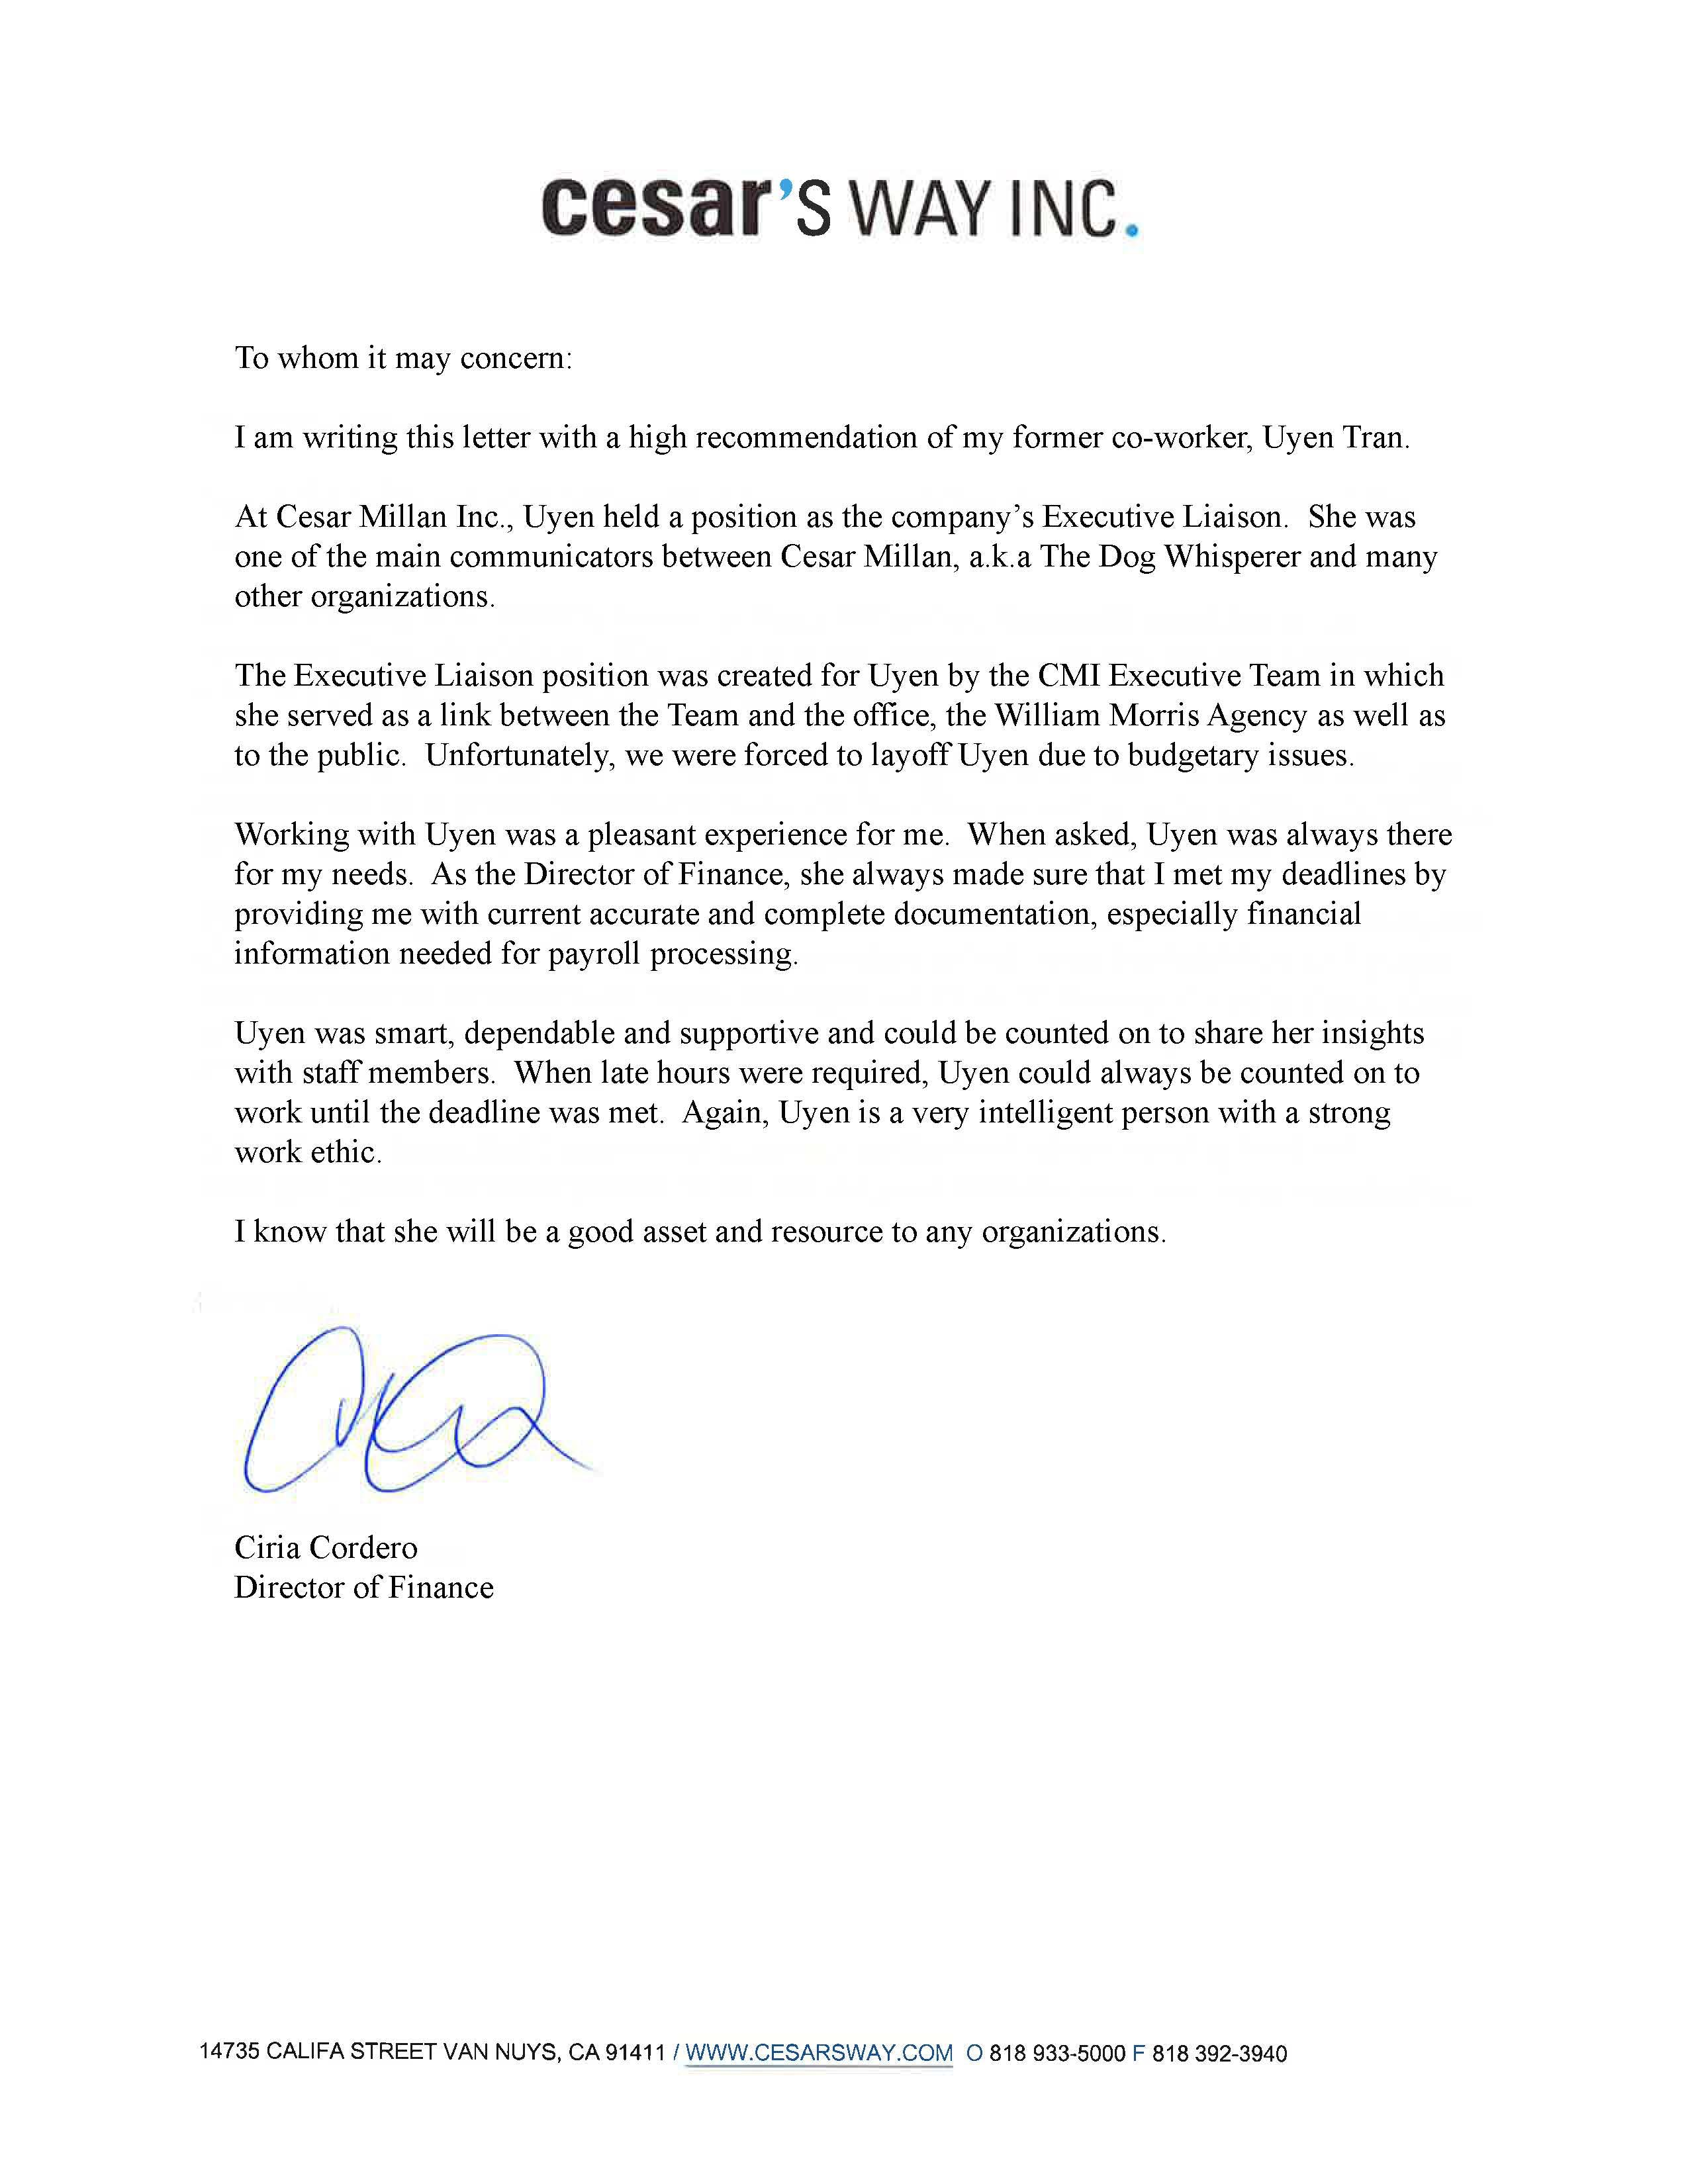 Recommendation letter 1 uyen c tran archinect recommendation letter 1 read more status built location los angeles ca us aljukfo Image collections